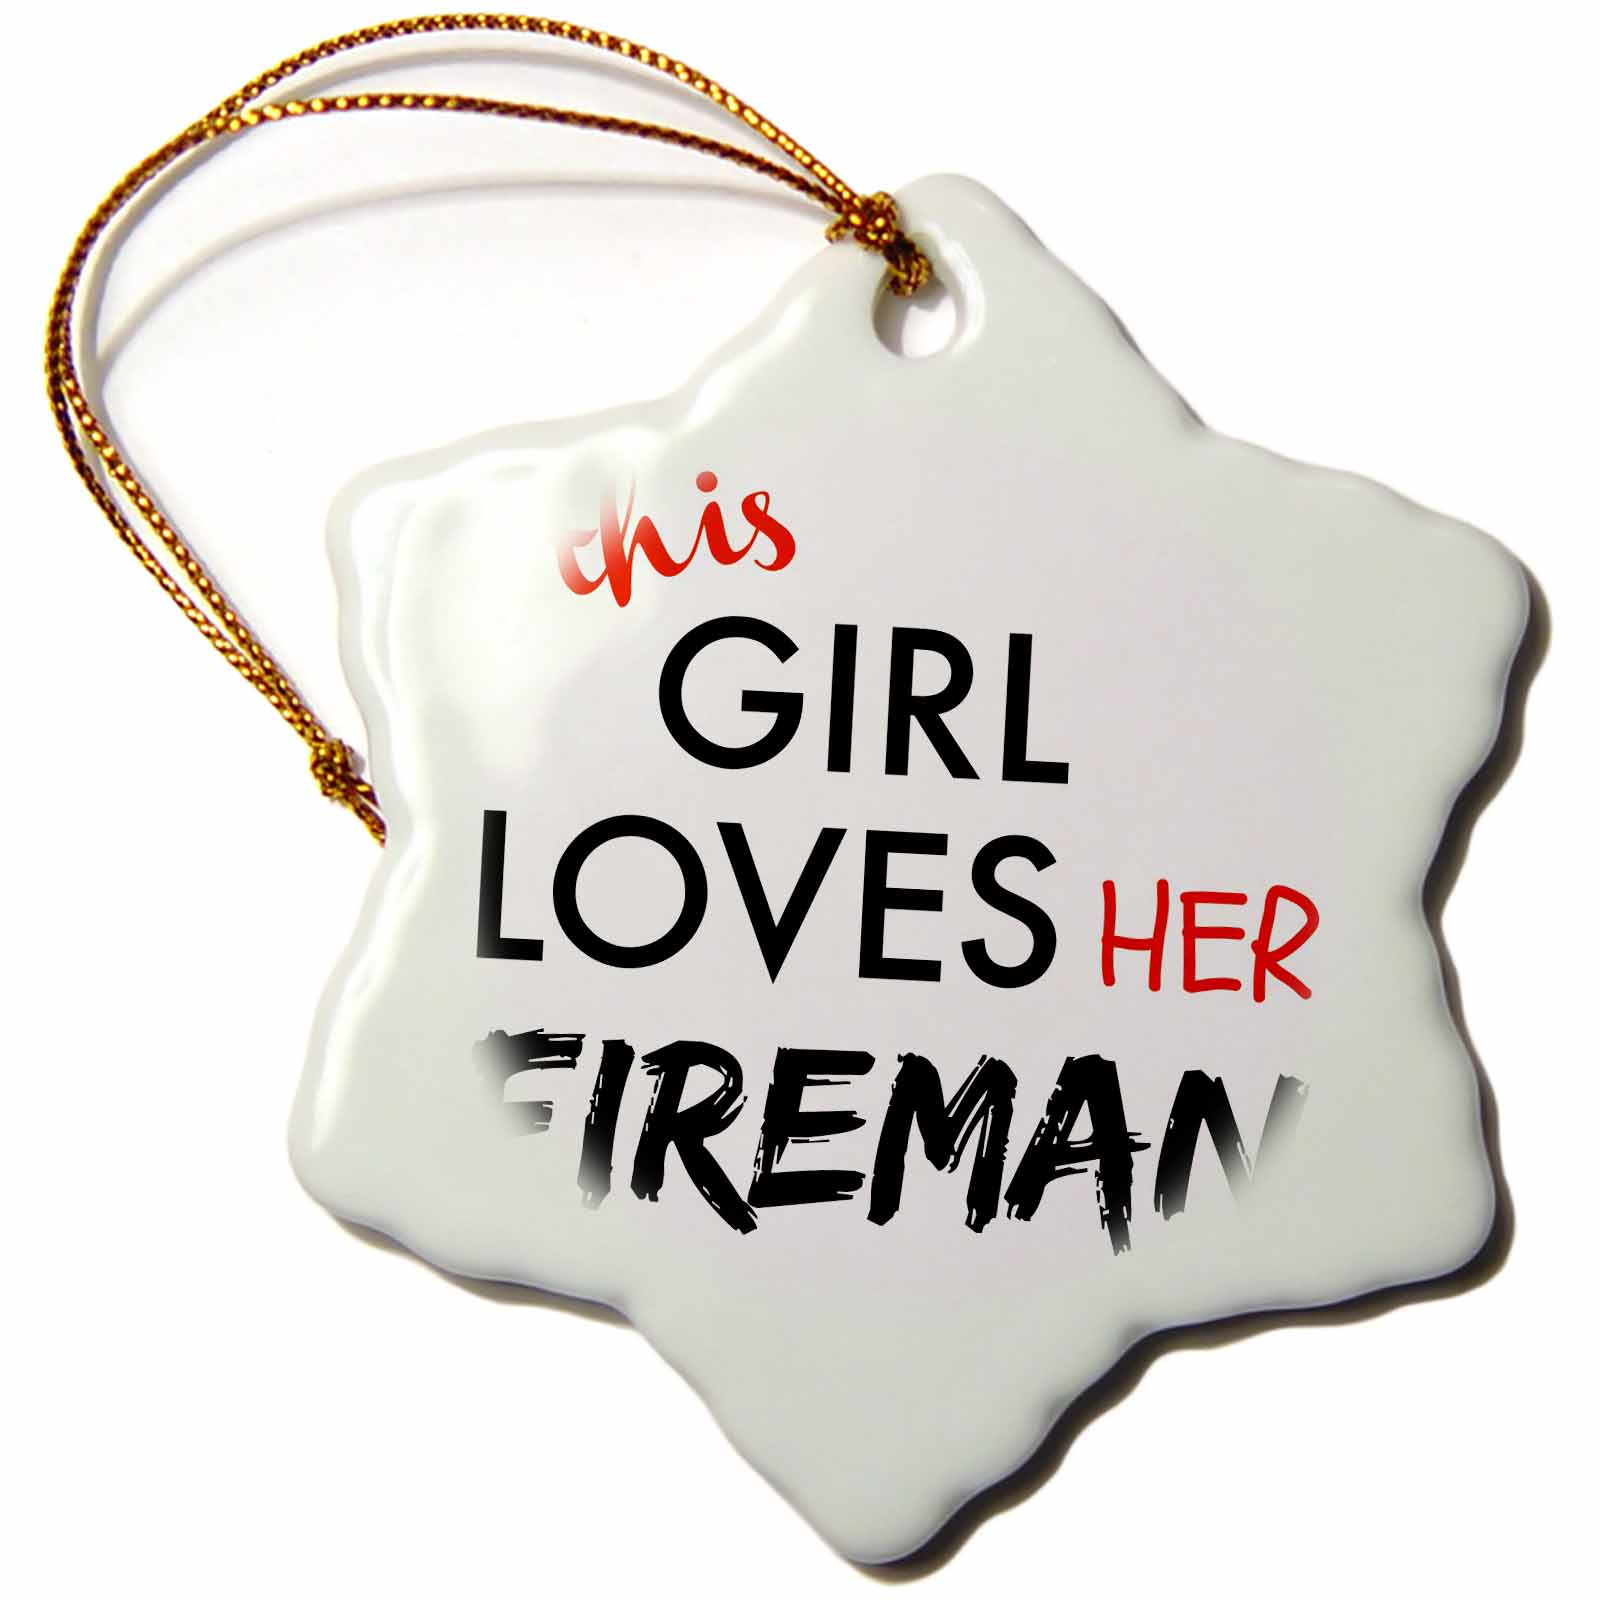 3dRose this girl loves her fireman black and red lettering, Snowflake Ornament, Porcelain, 3-inch